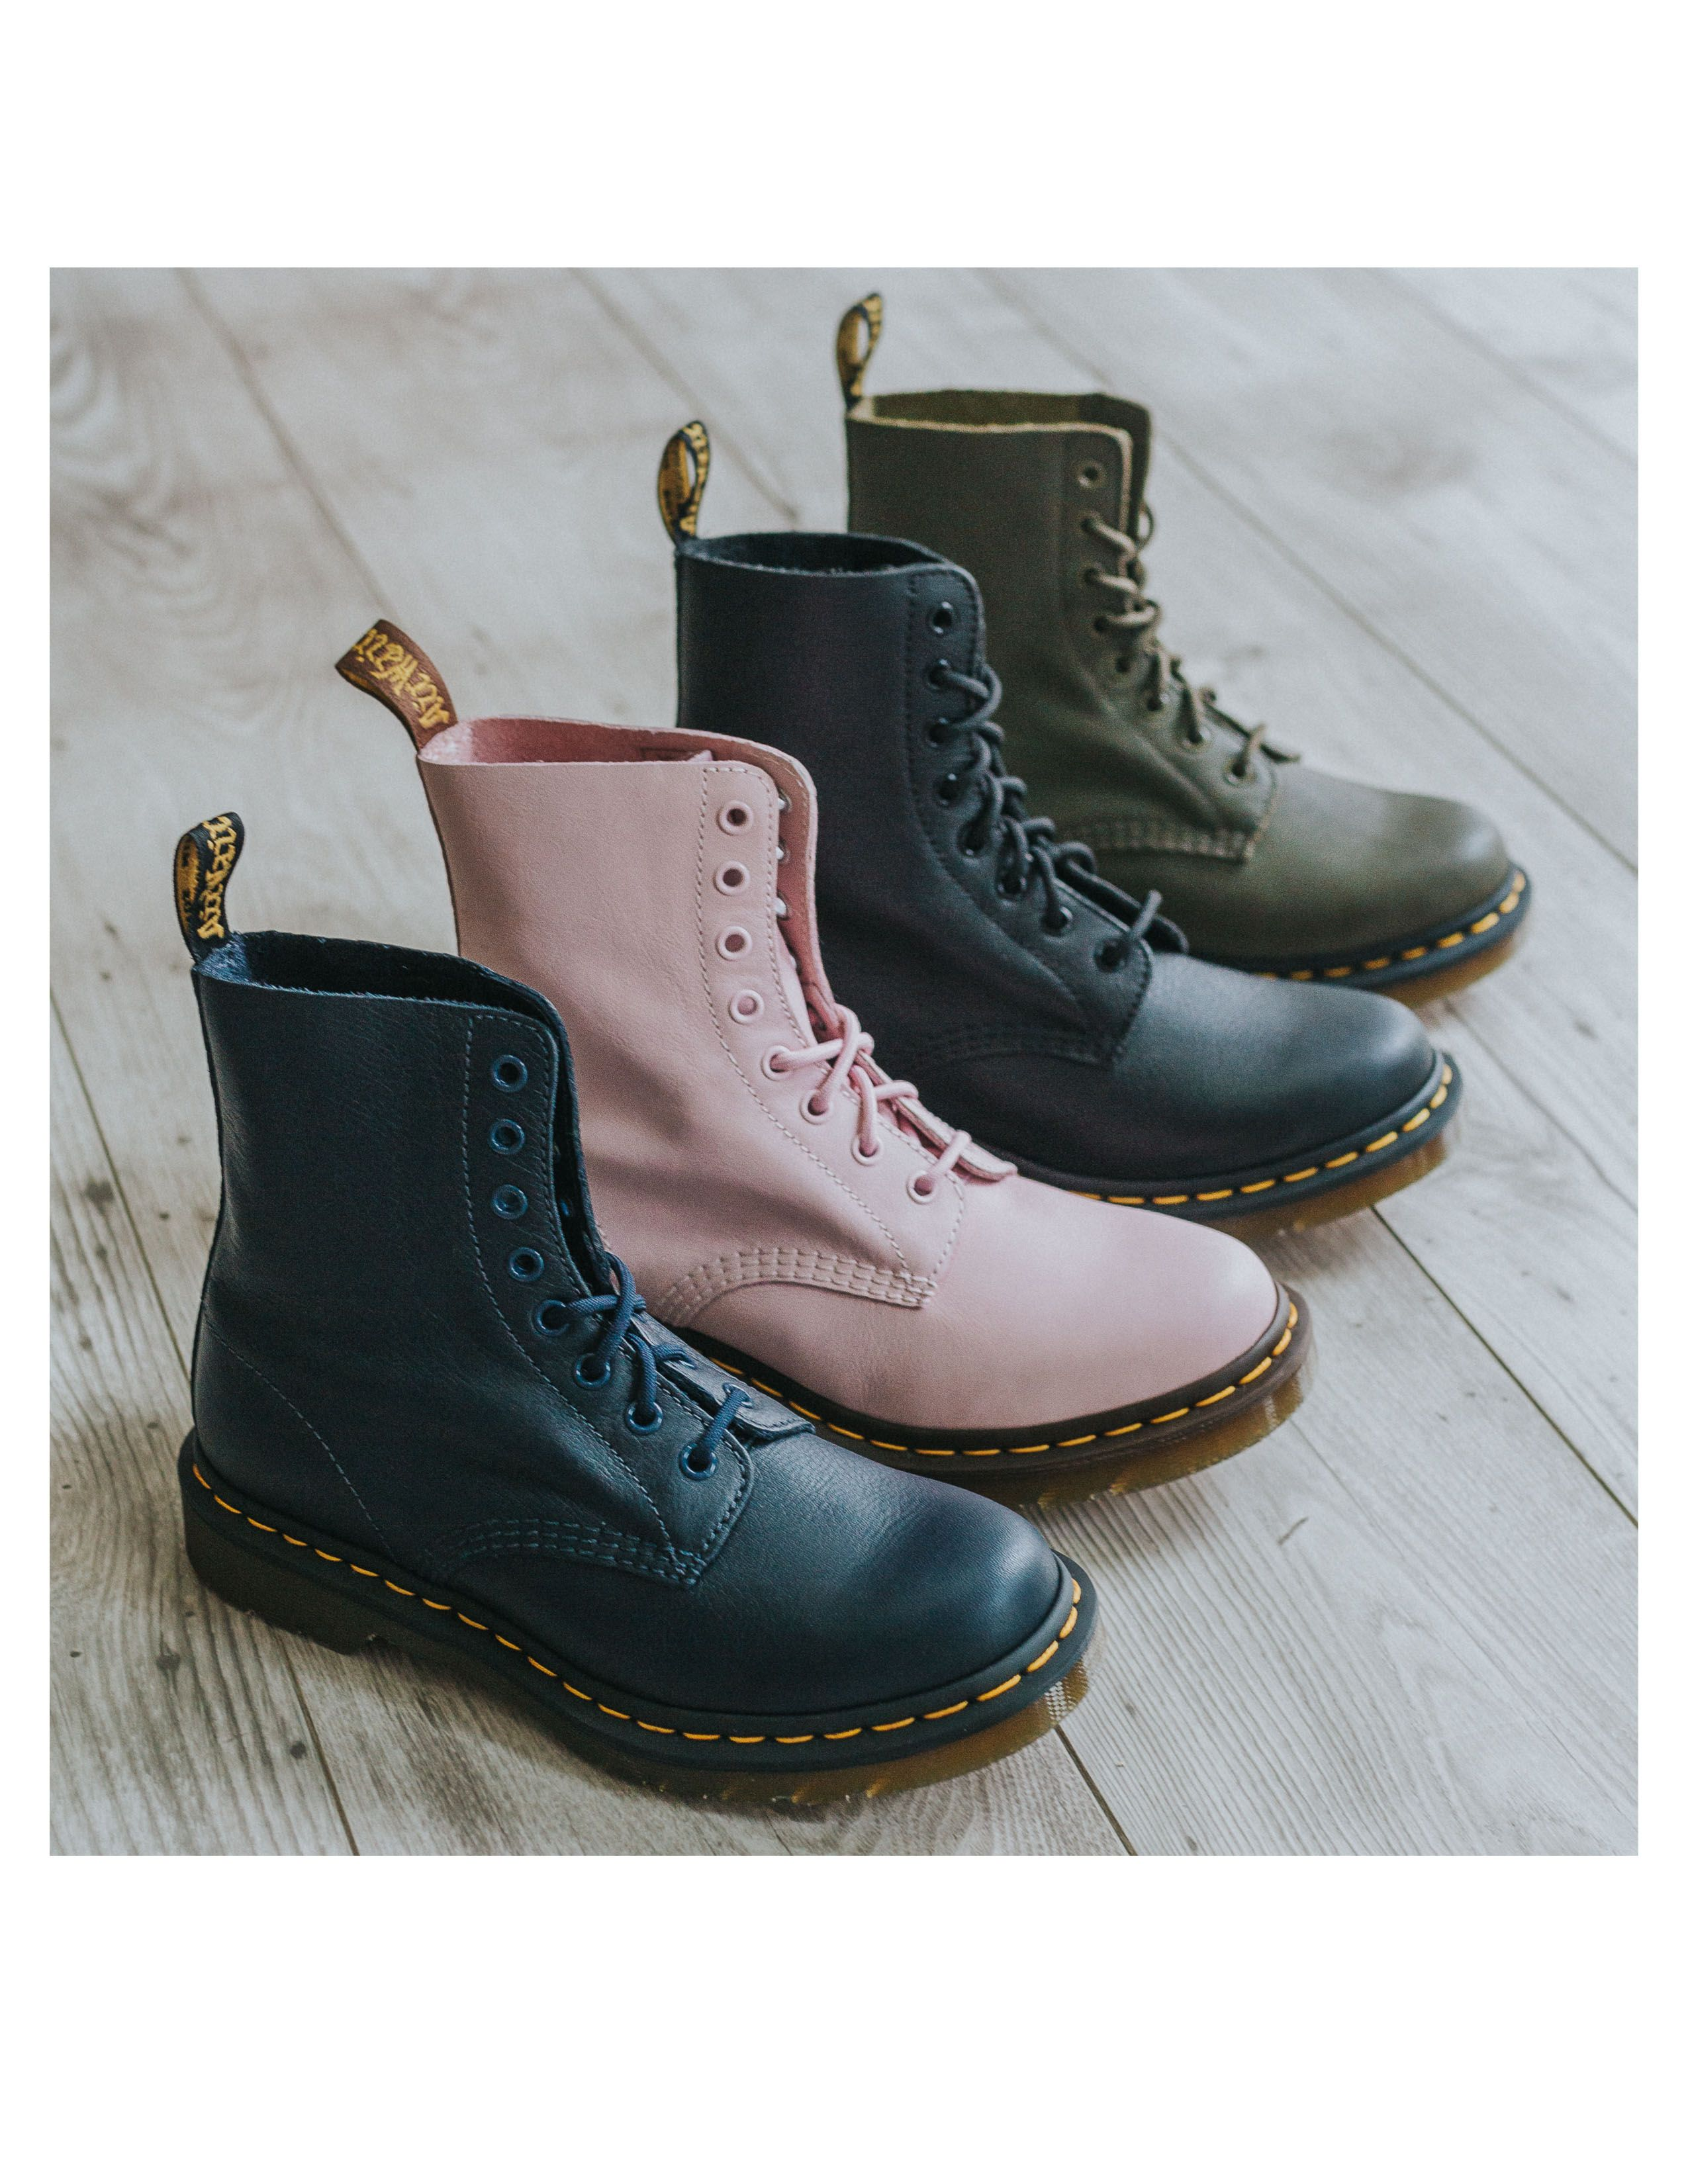 b342931bccf670 Dr. Martens 1460 Pascal Virginia Boot | Bubblegum From Kular Fashion based  in Derry, Northern Ireland.